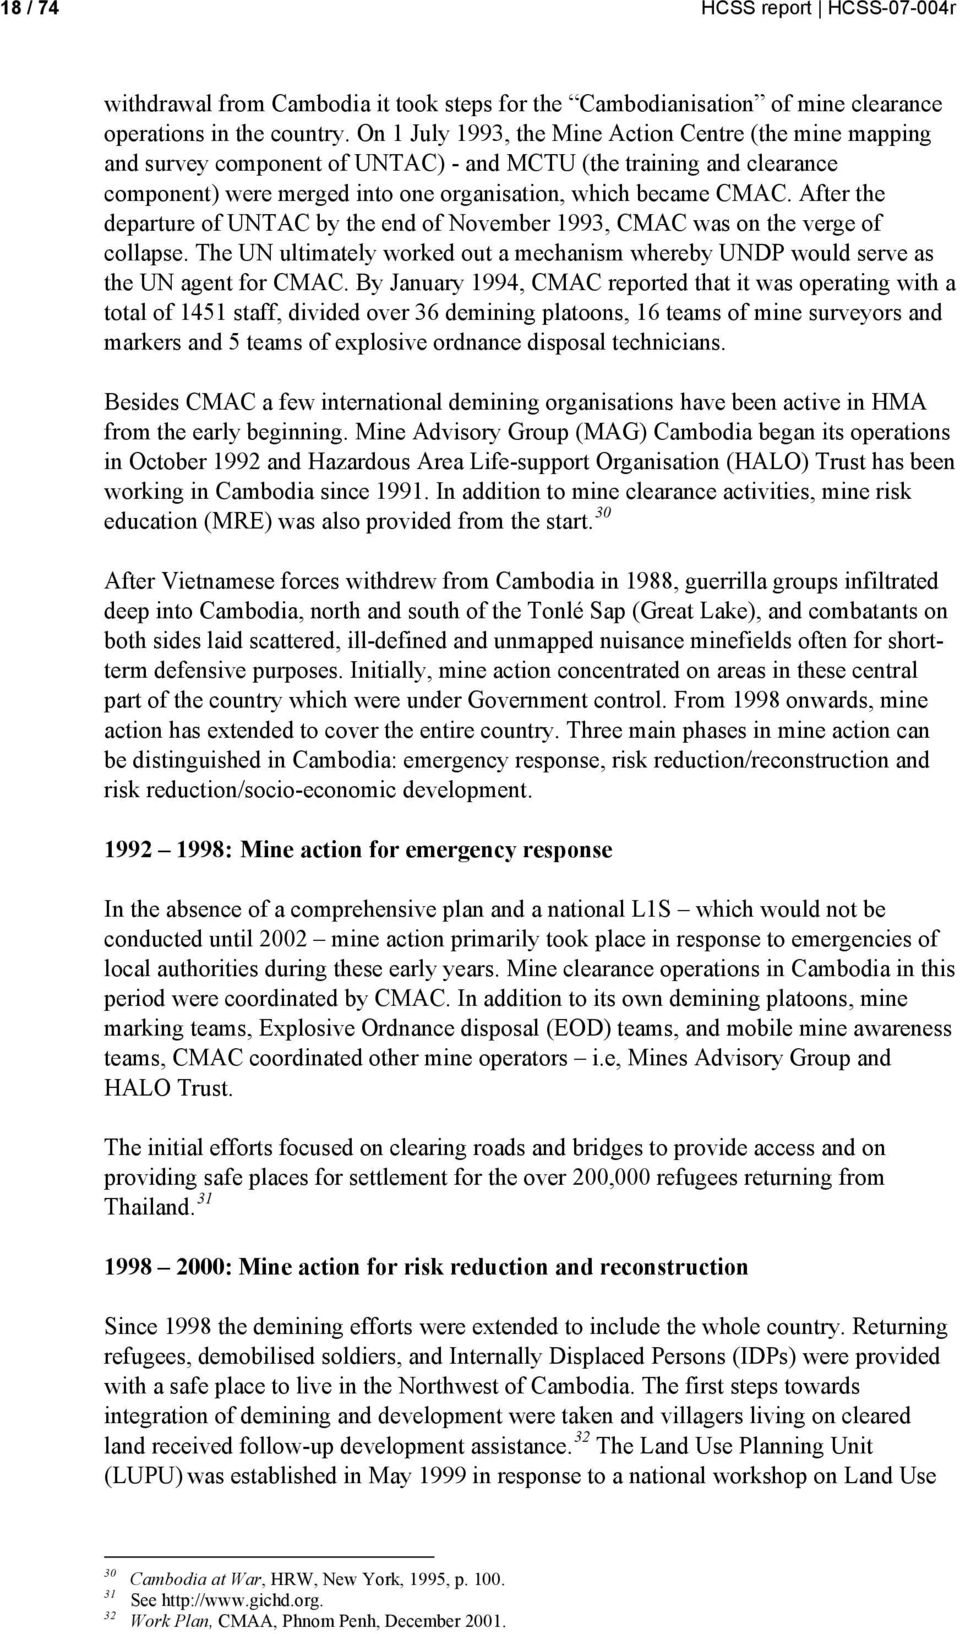 After the departure of UNTAC by the end of November 1993, CMAC was on the verge of collapse. The UN ultimately worked out a mechanism whereby UNDP would serve as the UN agent for CMAC.